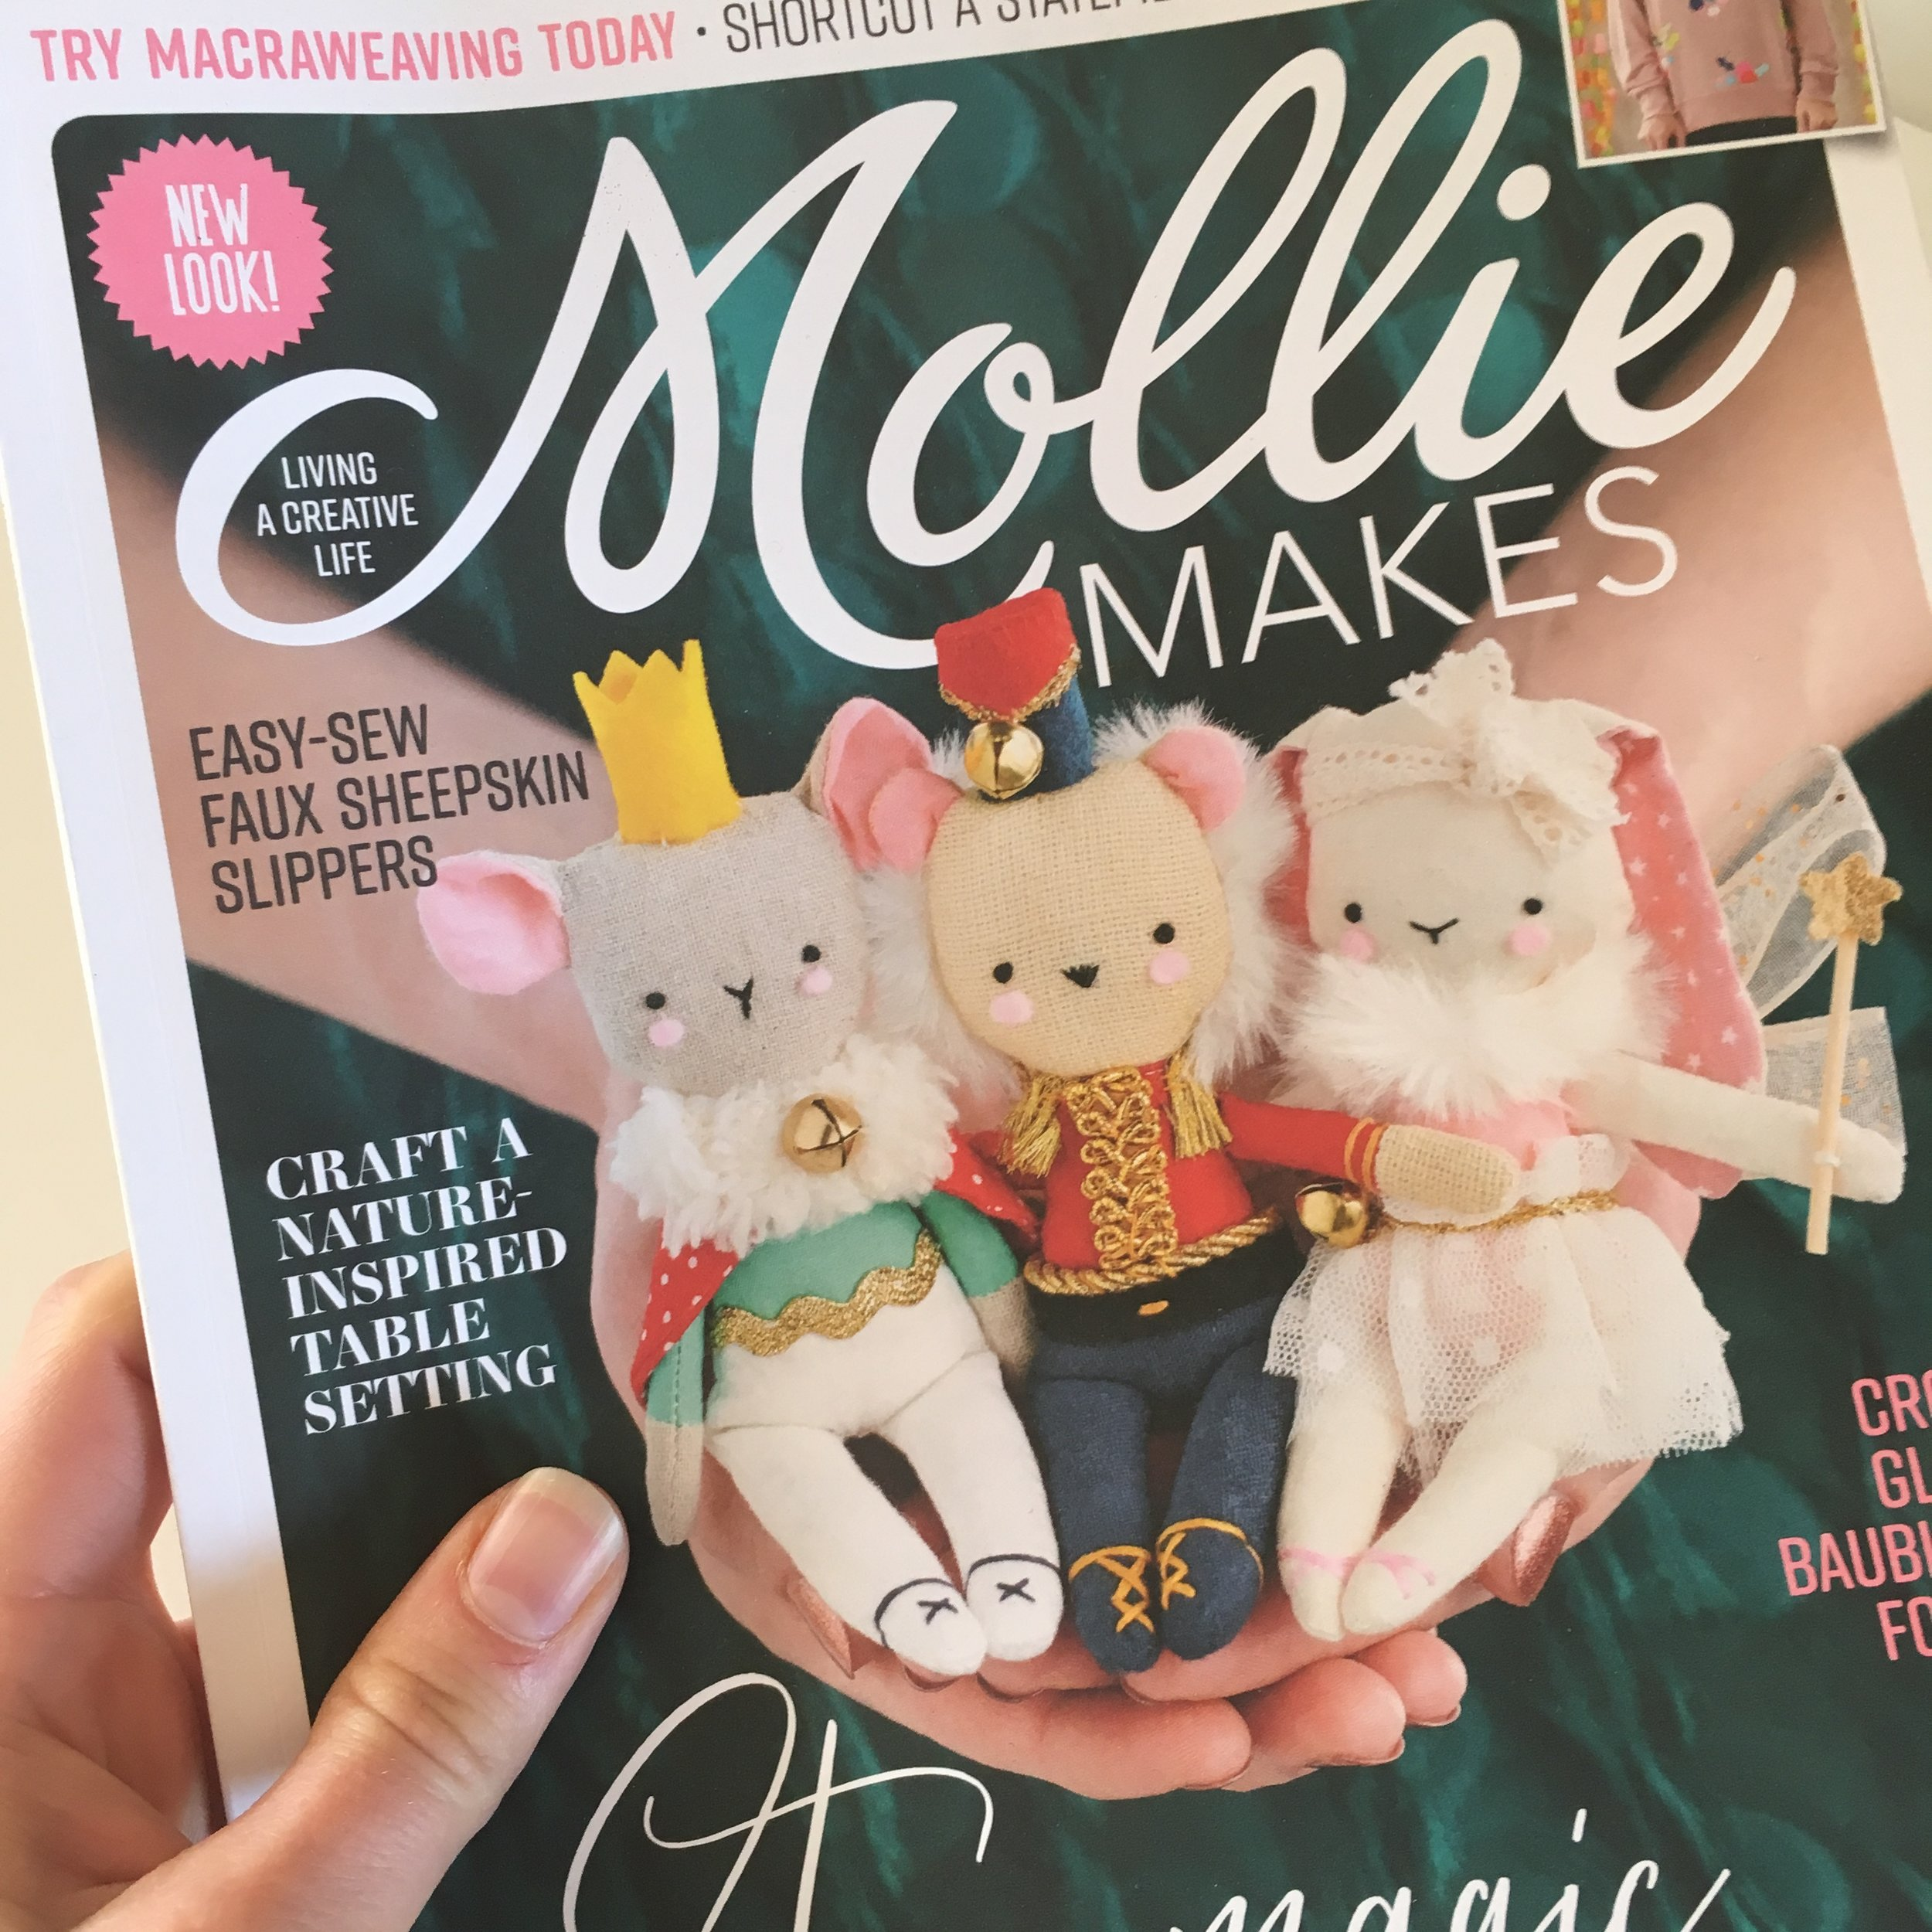 Front cover of Mollie Makes issue #99